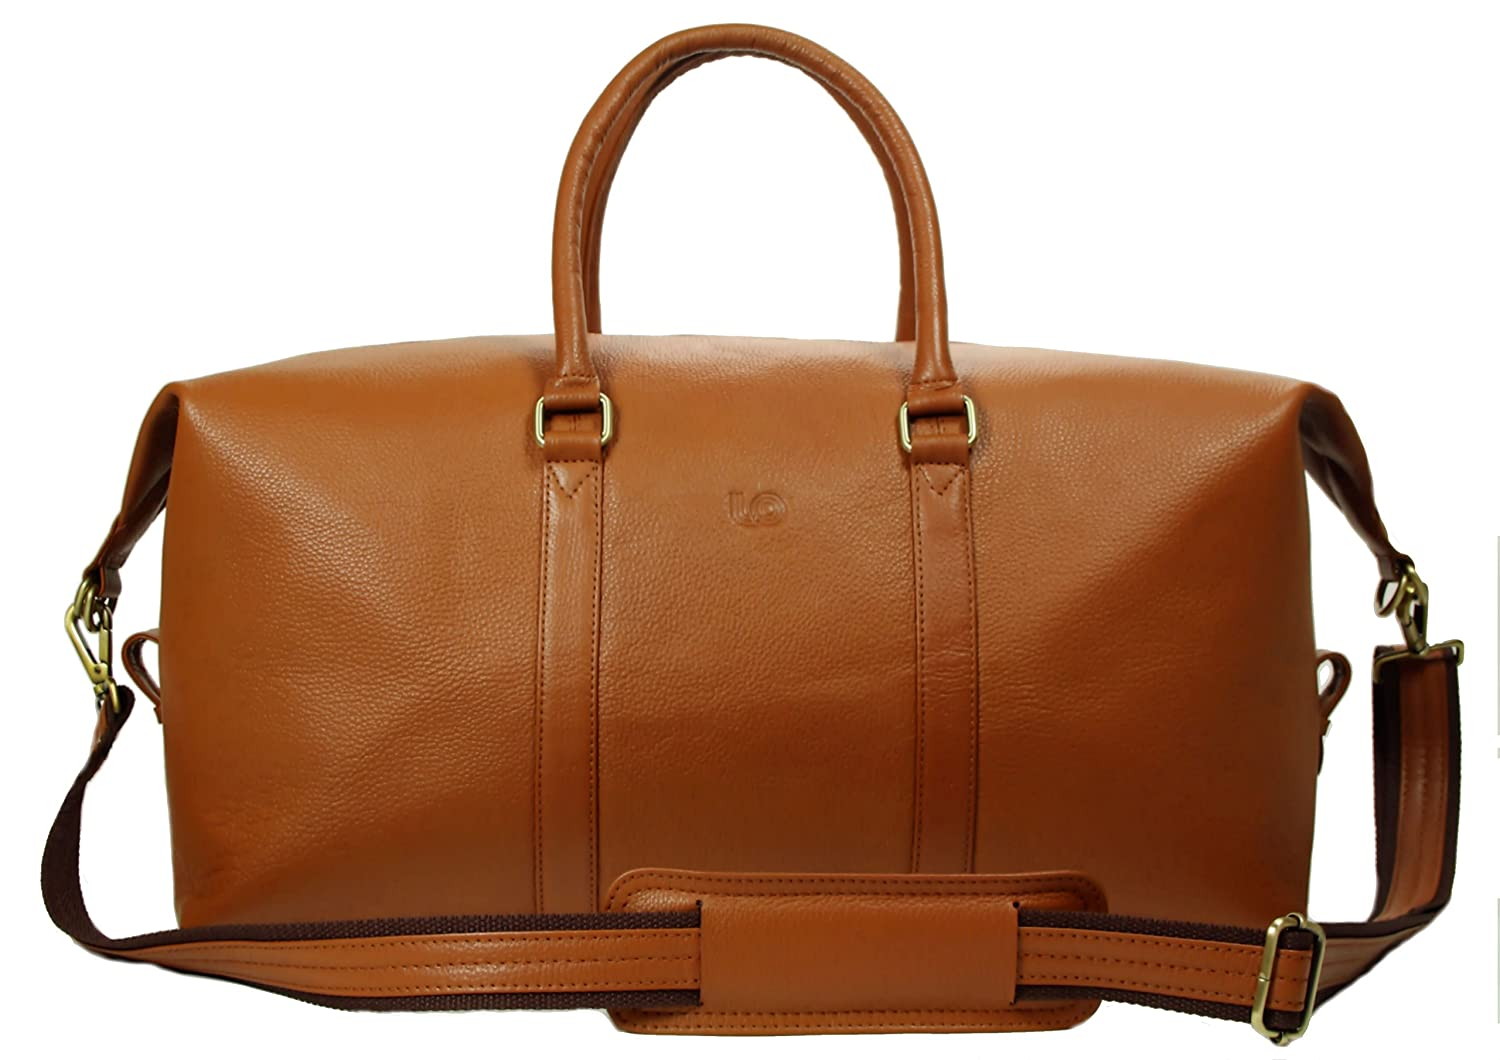 LeftOver Studio Expandable Weekend Overnight Travel Duffel Bag in Tan Top Grain Cow Leather